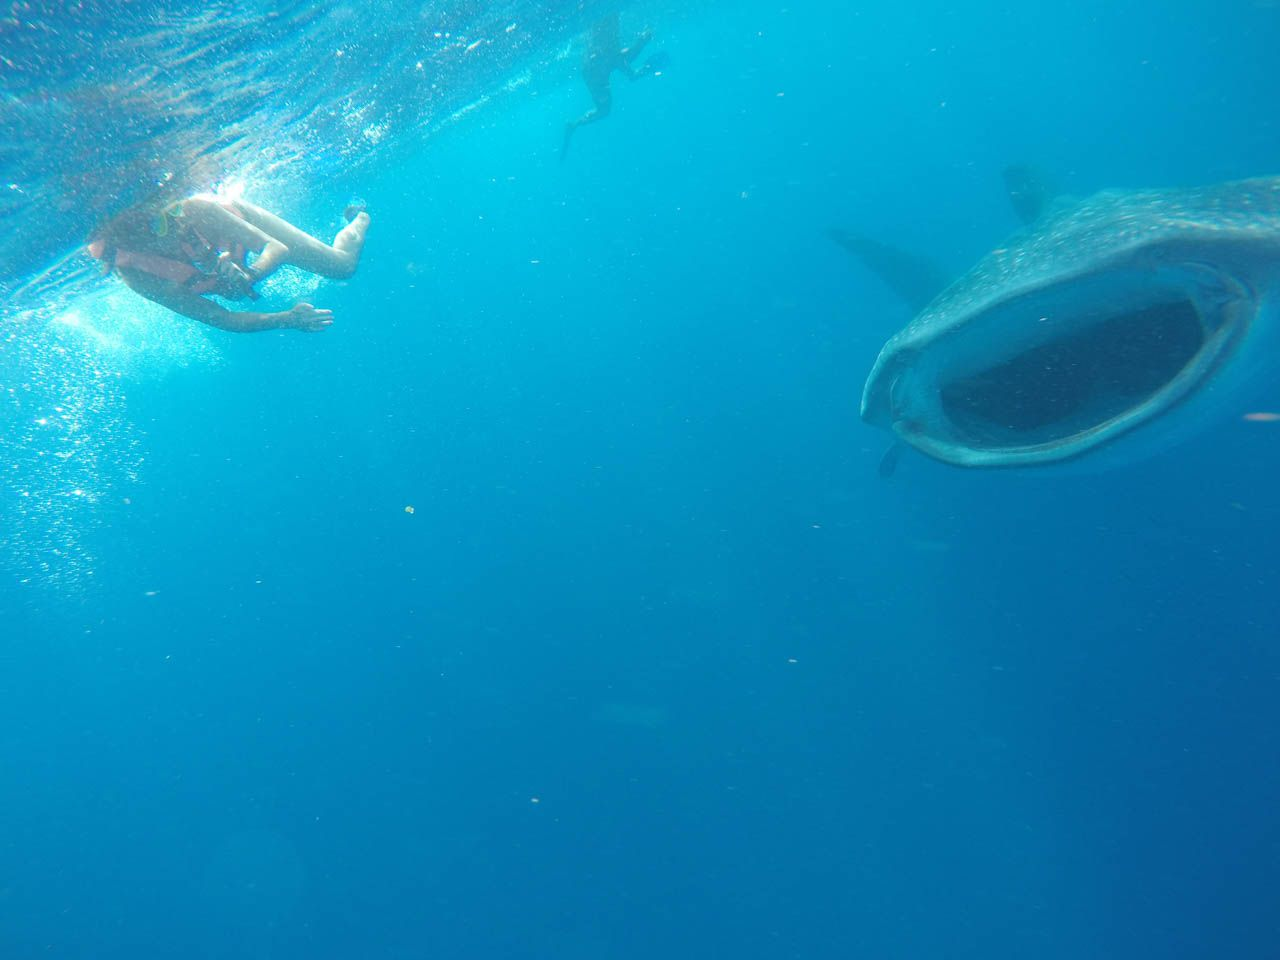 Swimming with whale sharks in Isla Holbox, Mexico.